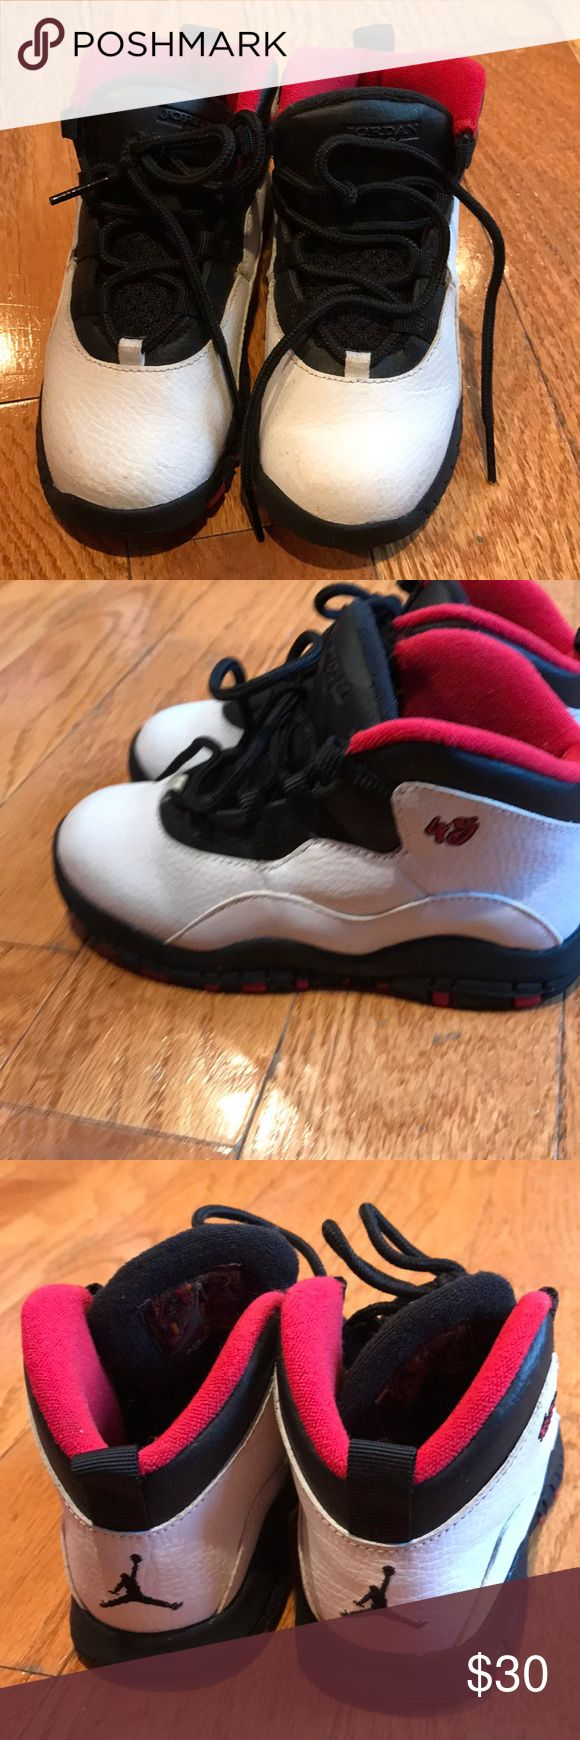 Toddler Jordans Toddler Jordan's 10 Retro. No scuffs or marks on the shoes. Box in excellent condition as well. Air Jordan Shoes Sneakers